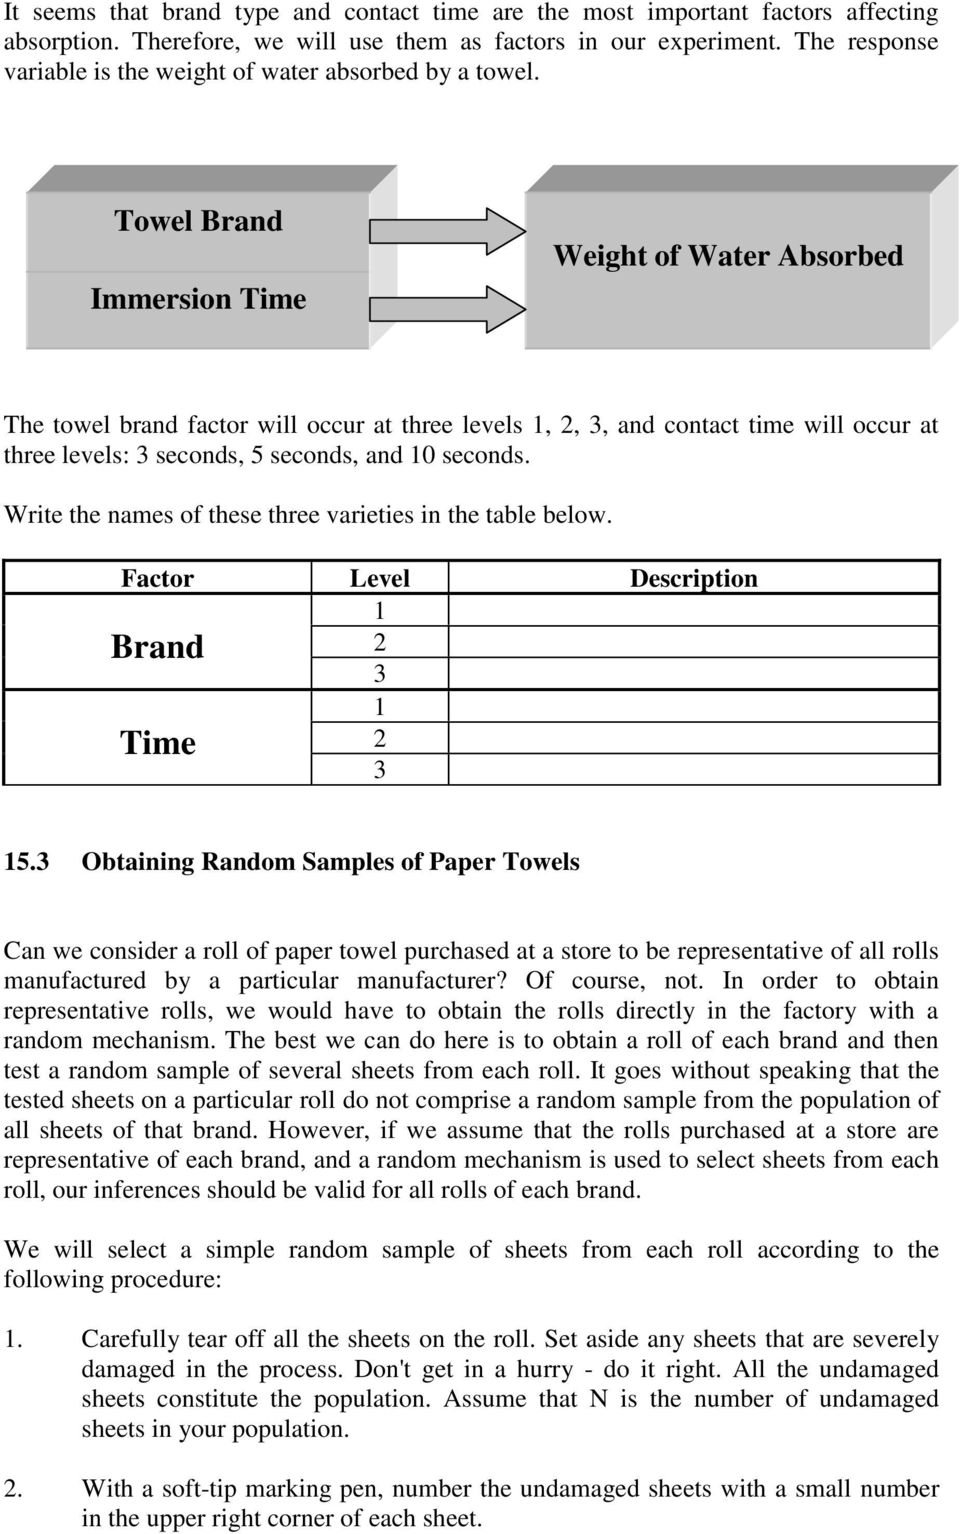 Towel Brand Immersion Time Weight of Water Absorbed The towel brand factor will occur at three levels 1, 2, 3, and contact time will occur at three levels: 3 seconds, 5 seconds, and 10 seconds.